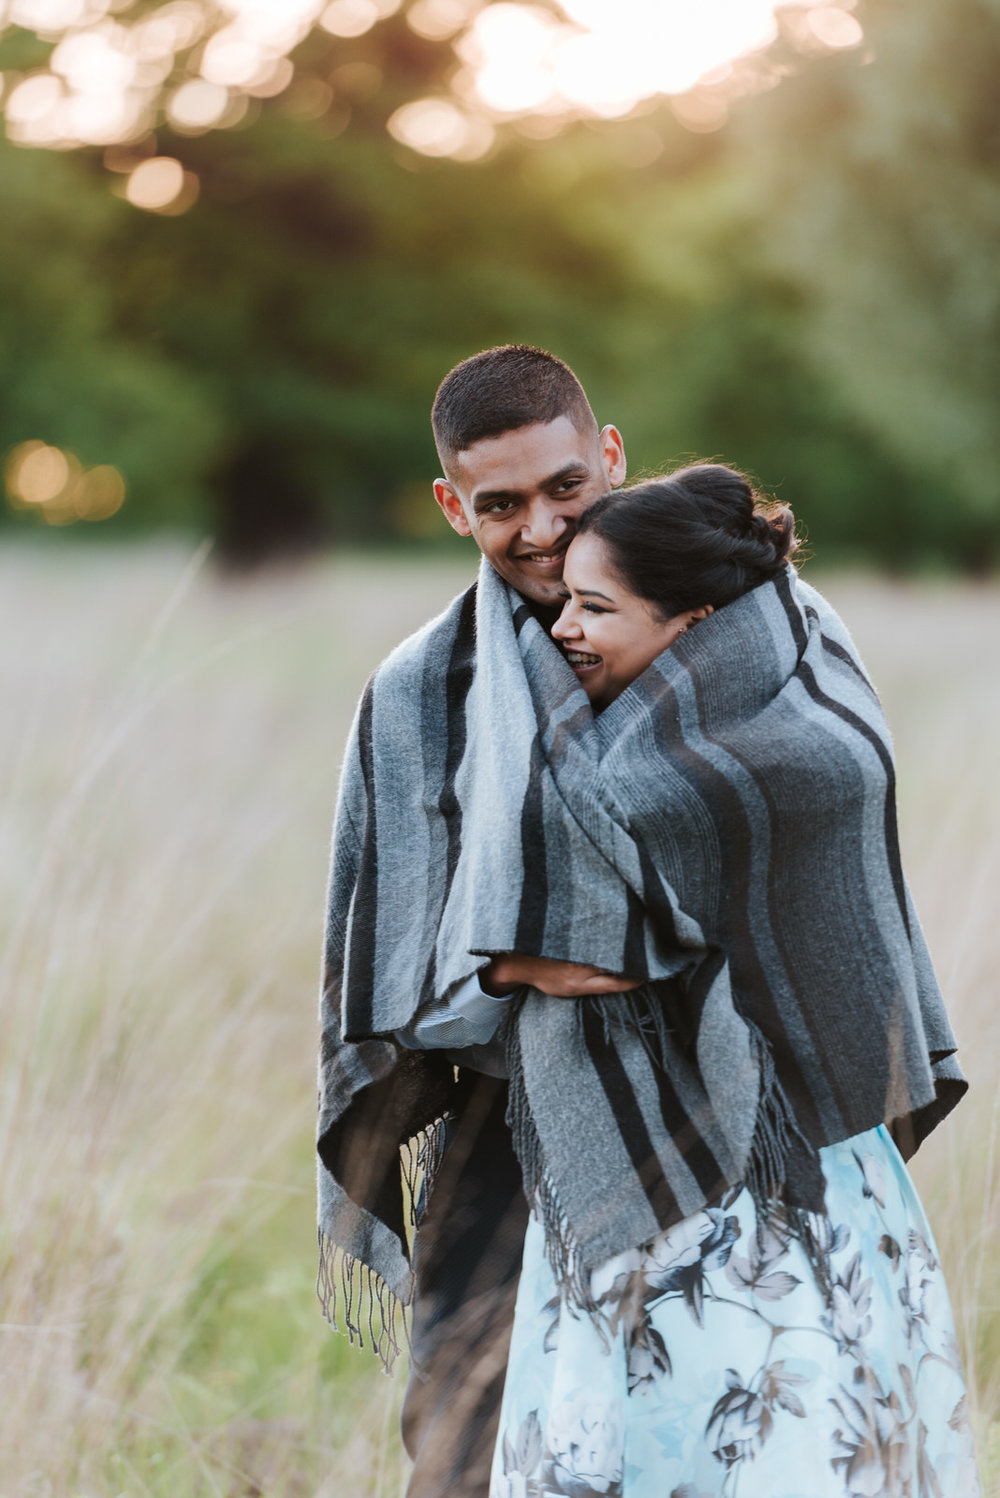 Richmond_Park_Engagement_Shoot_Elisha_Jonus_018.jpg